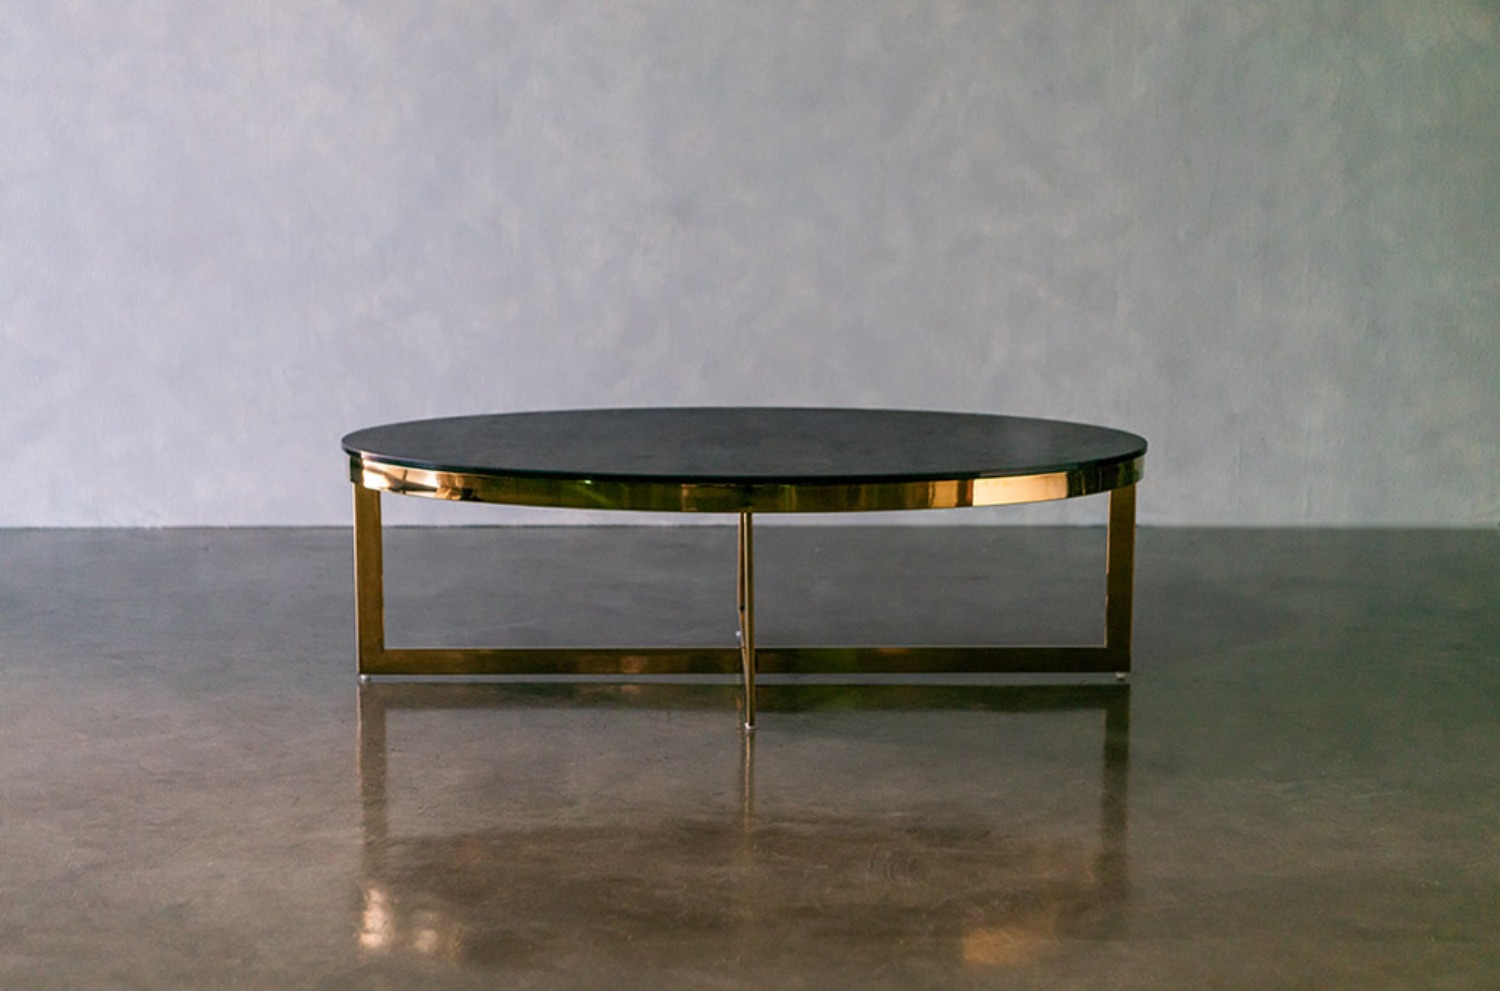 Cross Oval Ceramic Table